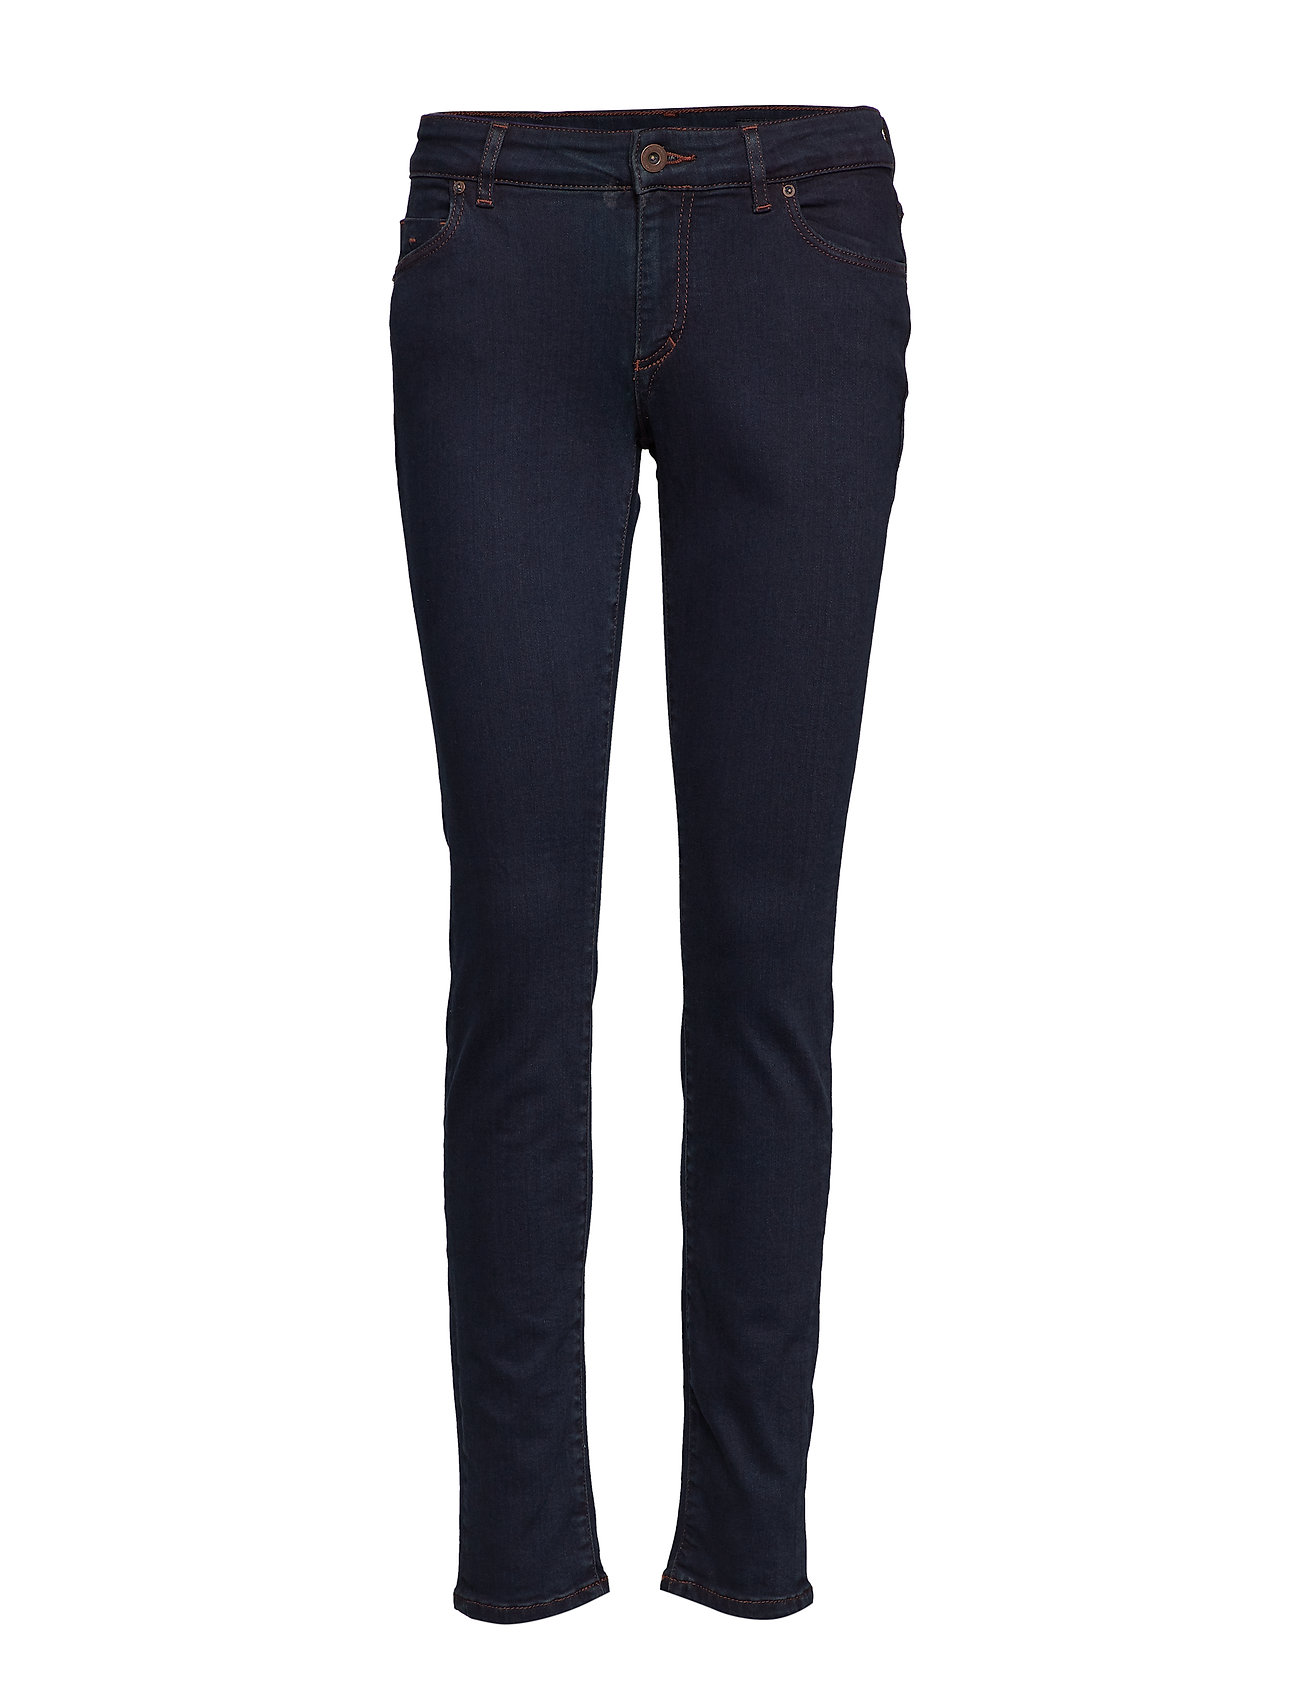 Marc O'Polo Denim Trousers - MOTOR SCOOTER WASH